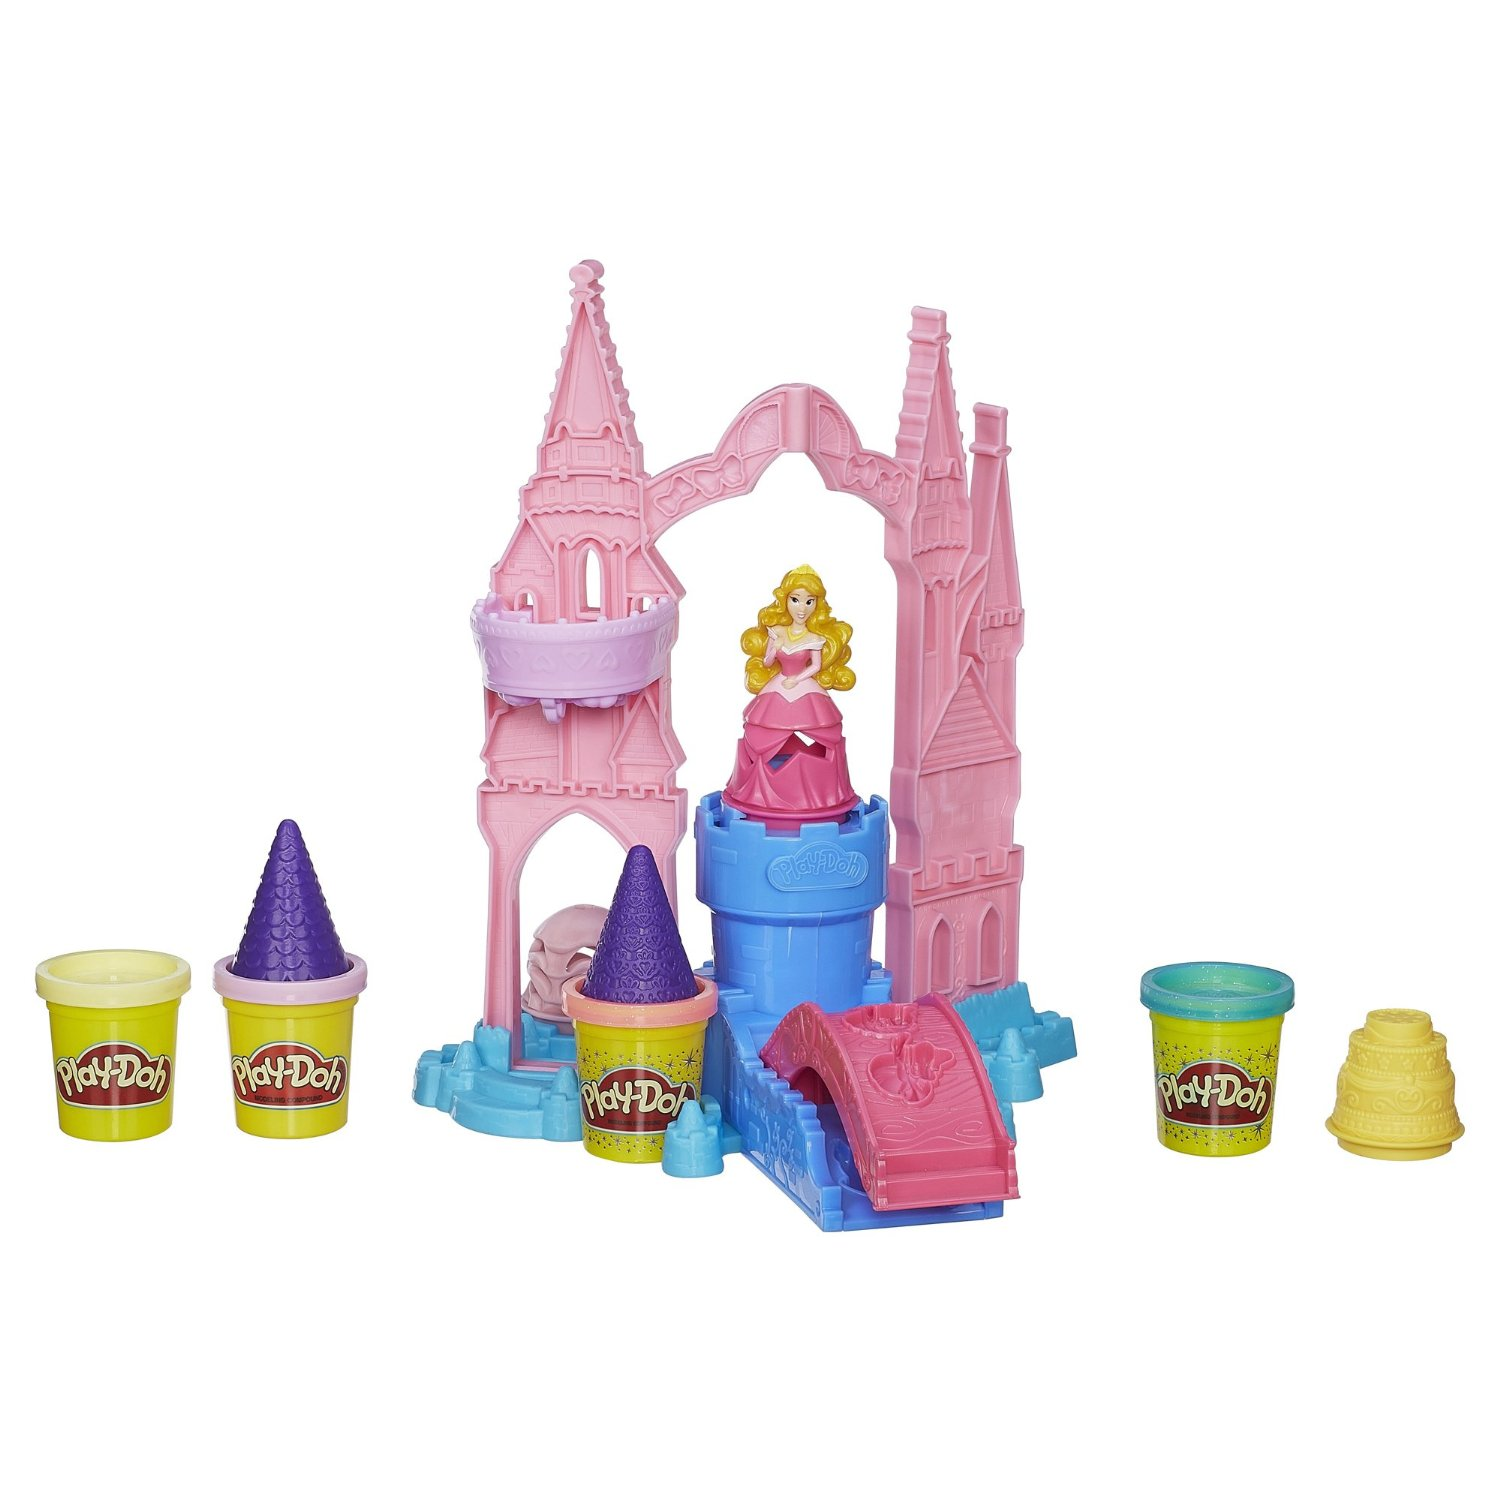 Bộ bột nặn  Play-Doh Mix 'n Match Magical Designs Palace Set Featuring Disney Princess Aurora